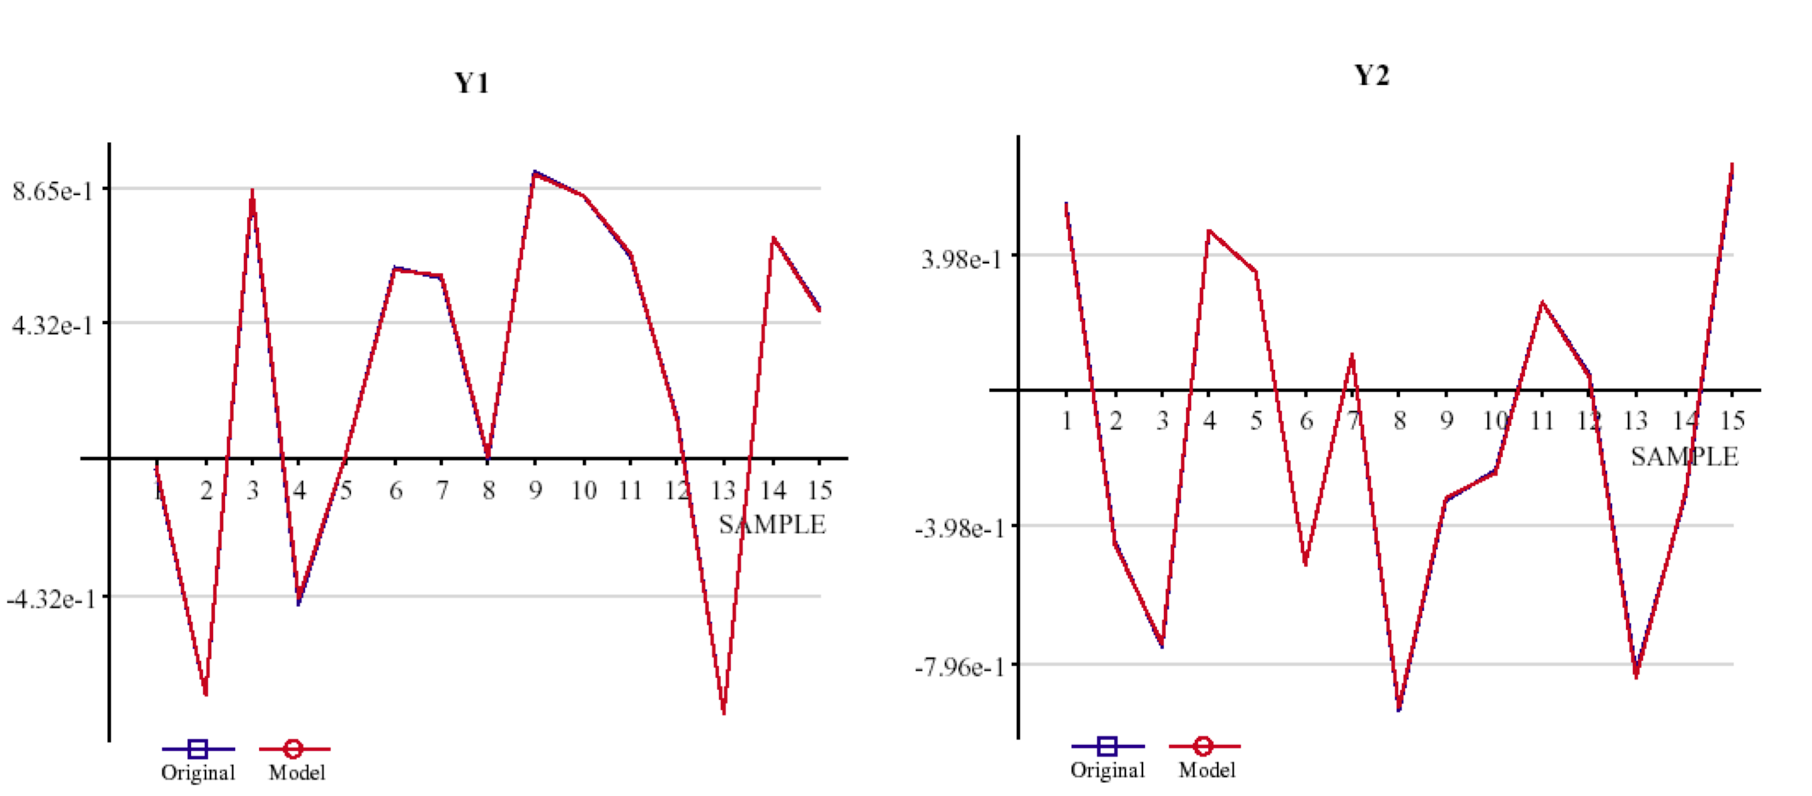 Graphs of two models